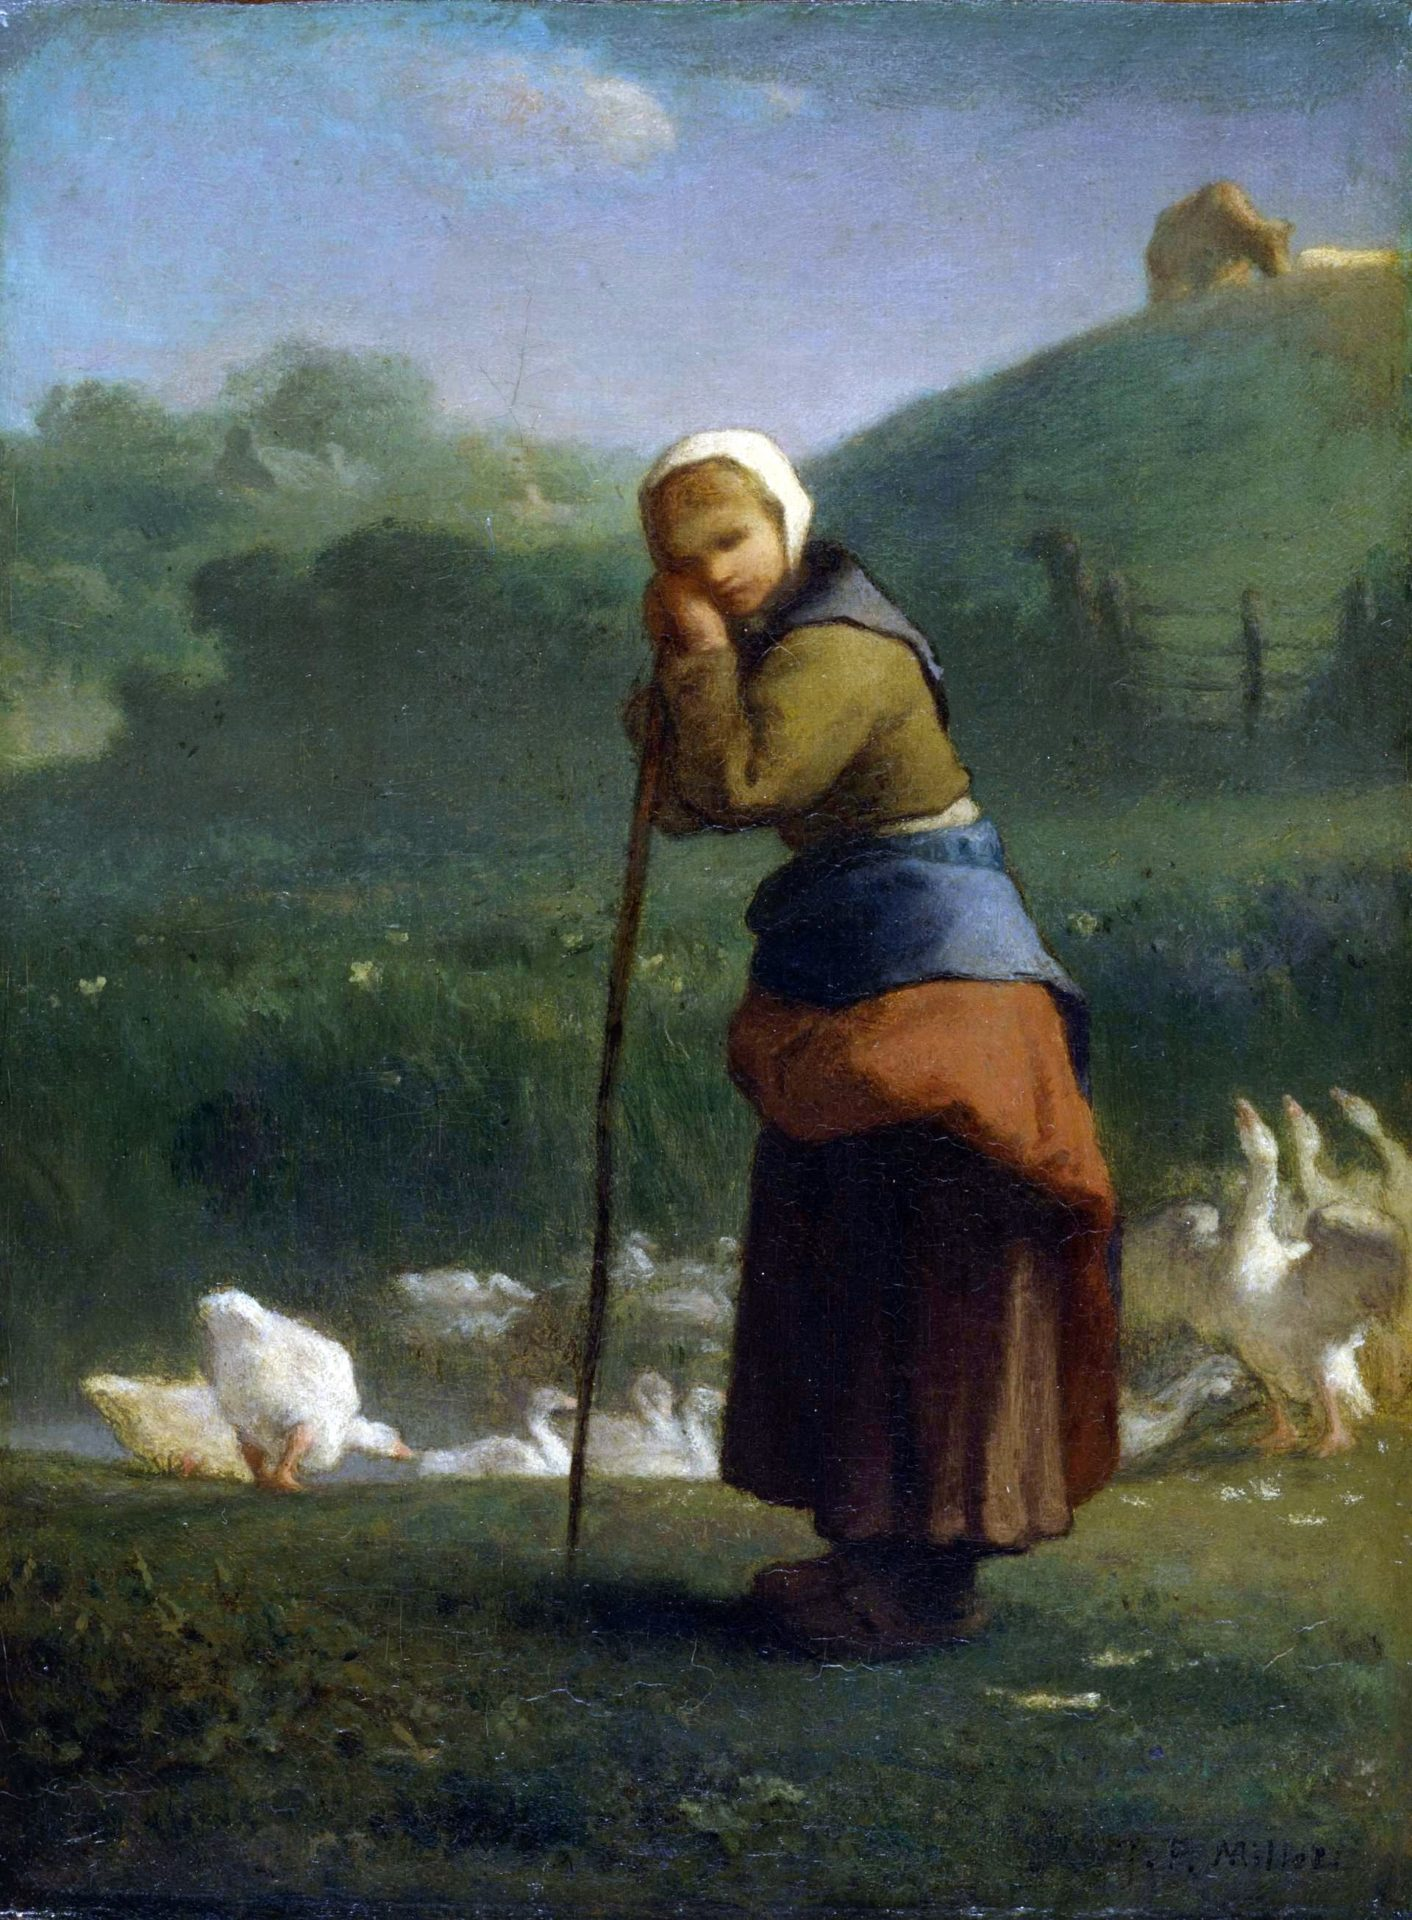 Jean-Francois Millet - The goose girl at Gruchy (1856)